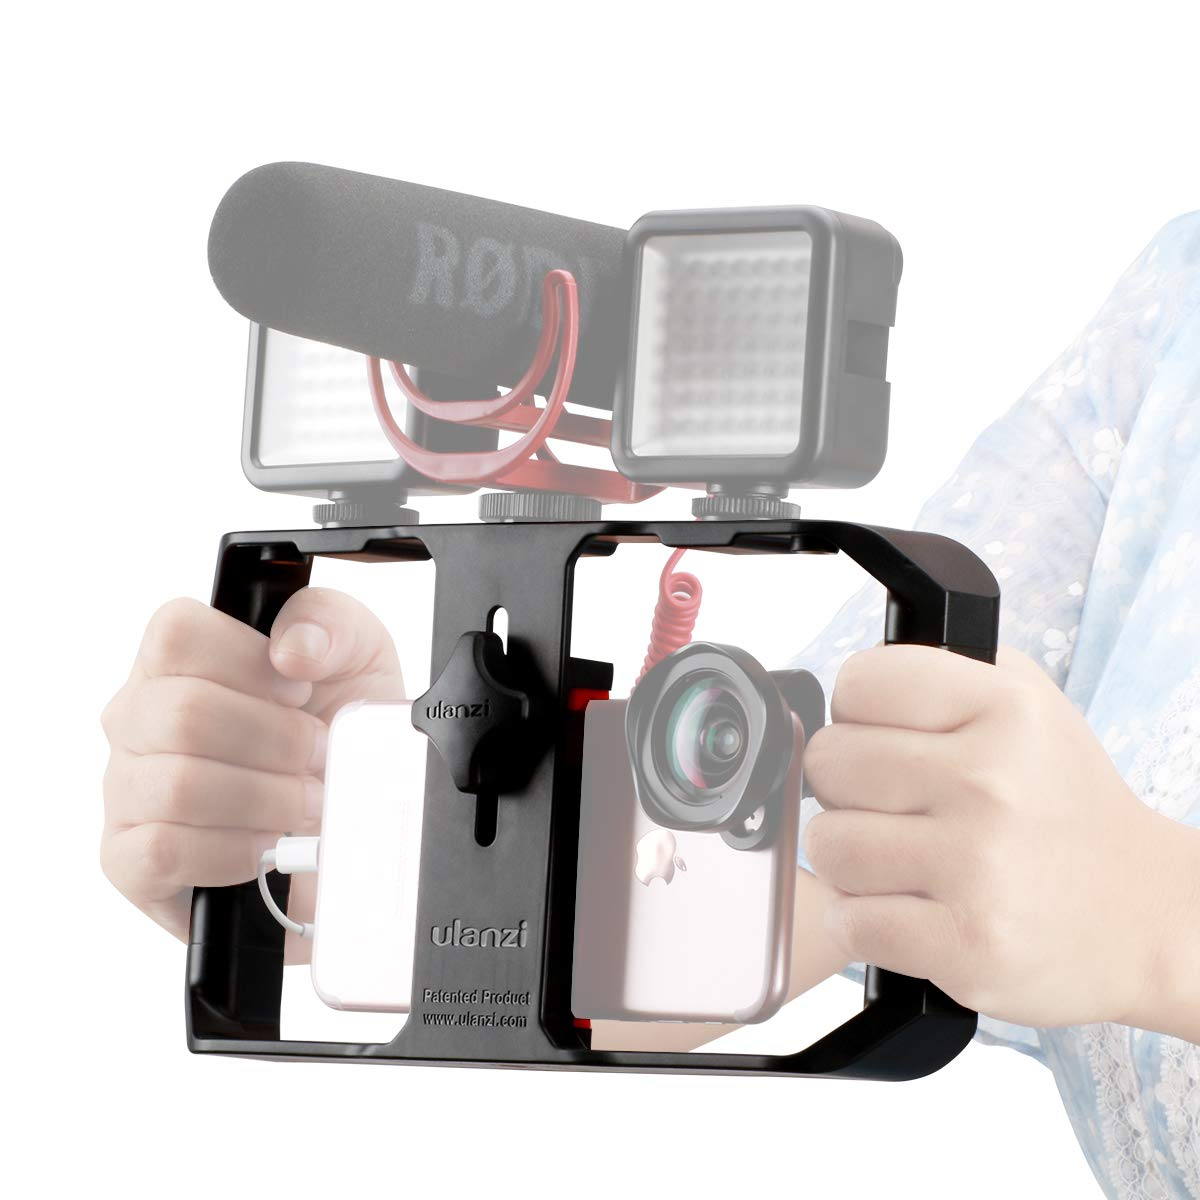 Ulanzi U Rig Pro Smartphone Video Rig, Video Stabilizer w 1/4 inch Screw Triple Cold Shoe Mount Compatible for iPhone Xs Max X 8 7 6 plus OnePlus 7 Pro Samsung Vlogging Used On Microphone Video Light by ULANZI